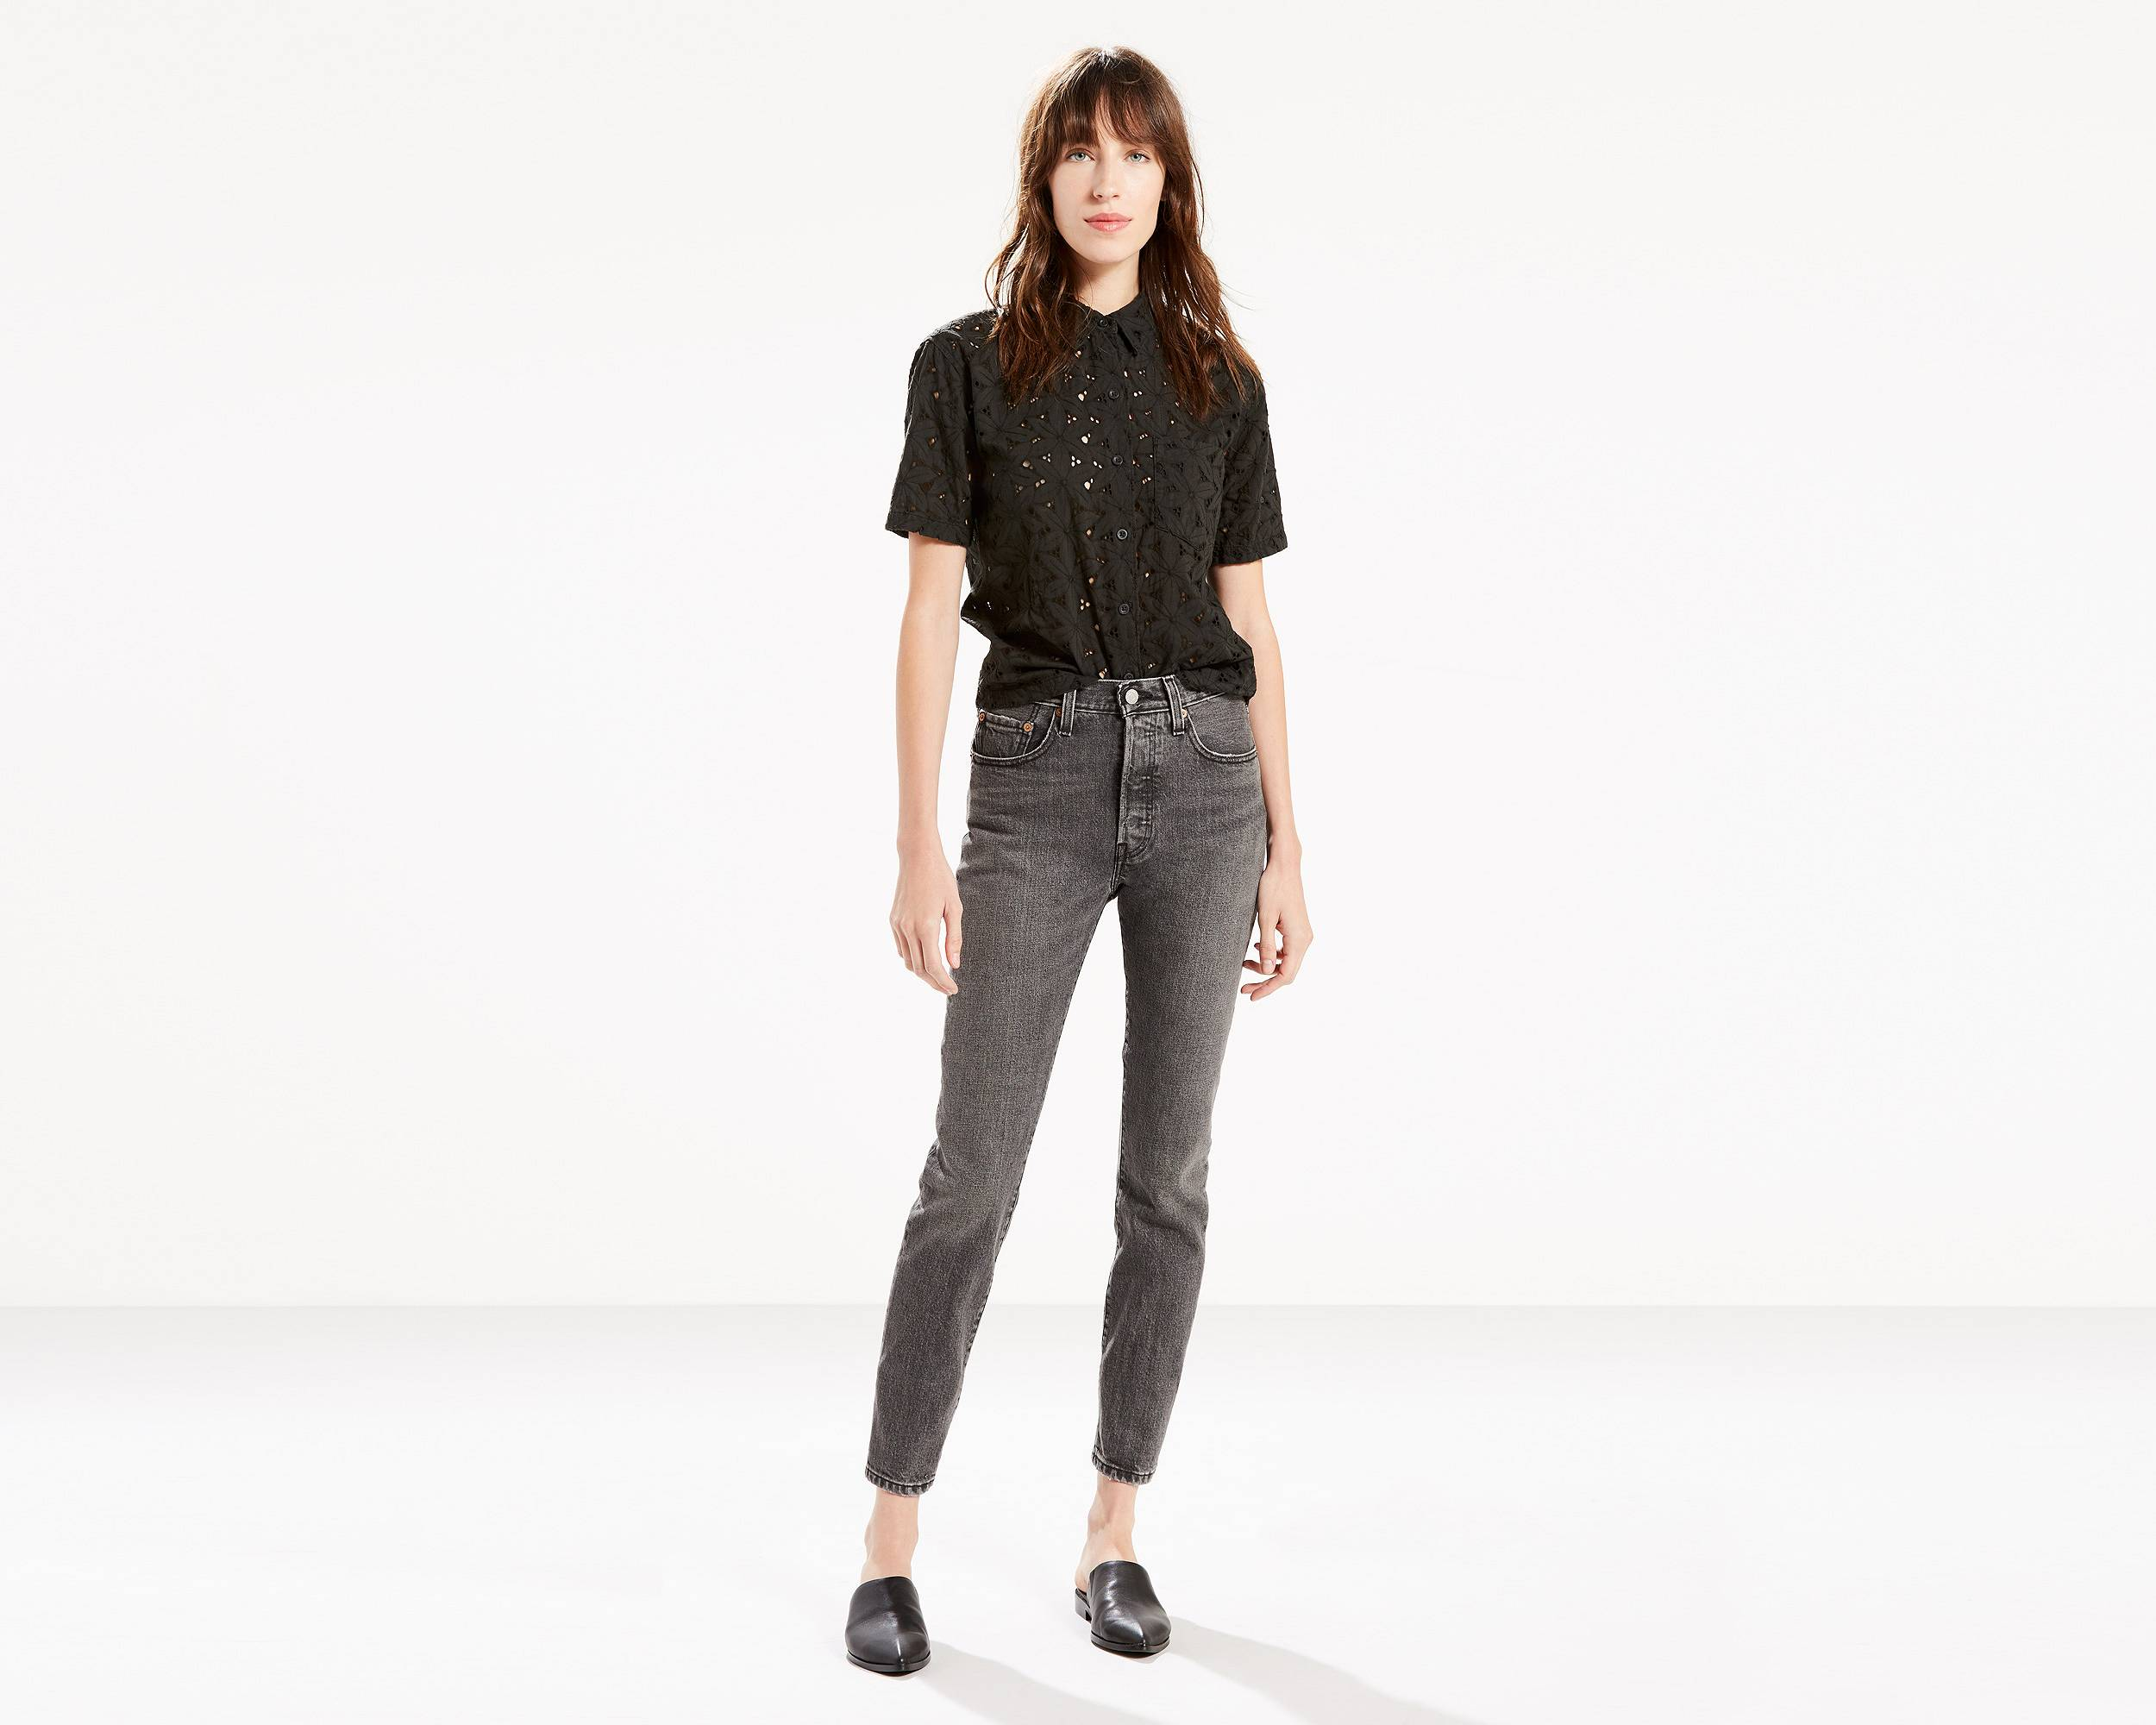 High Waisted Jeans - Shop High Rise Jeans for Women  Levi&39s®